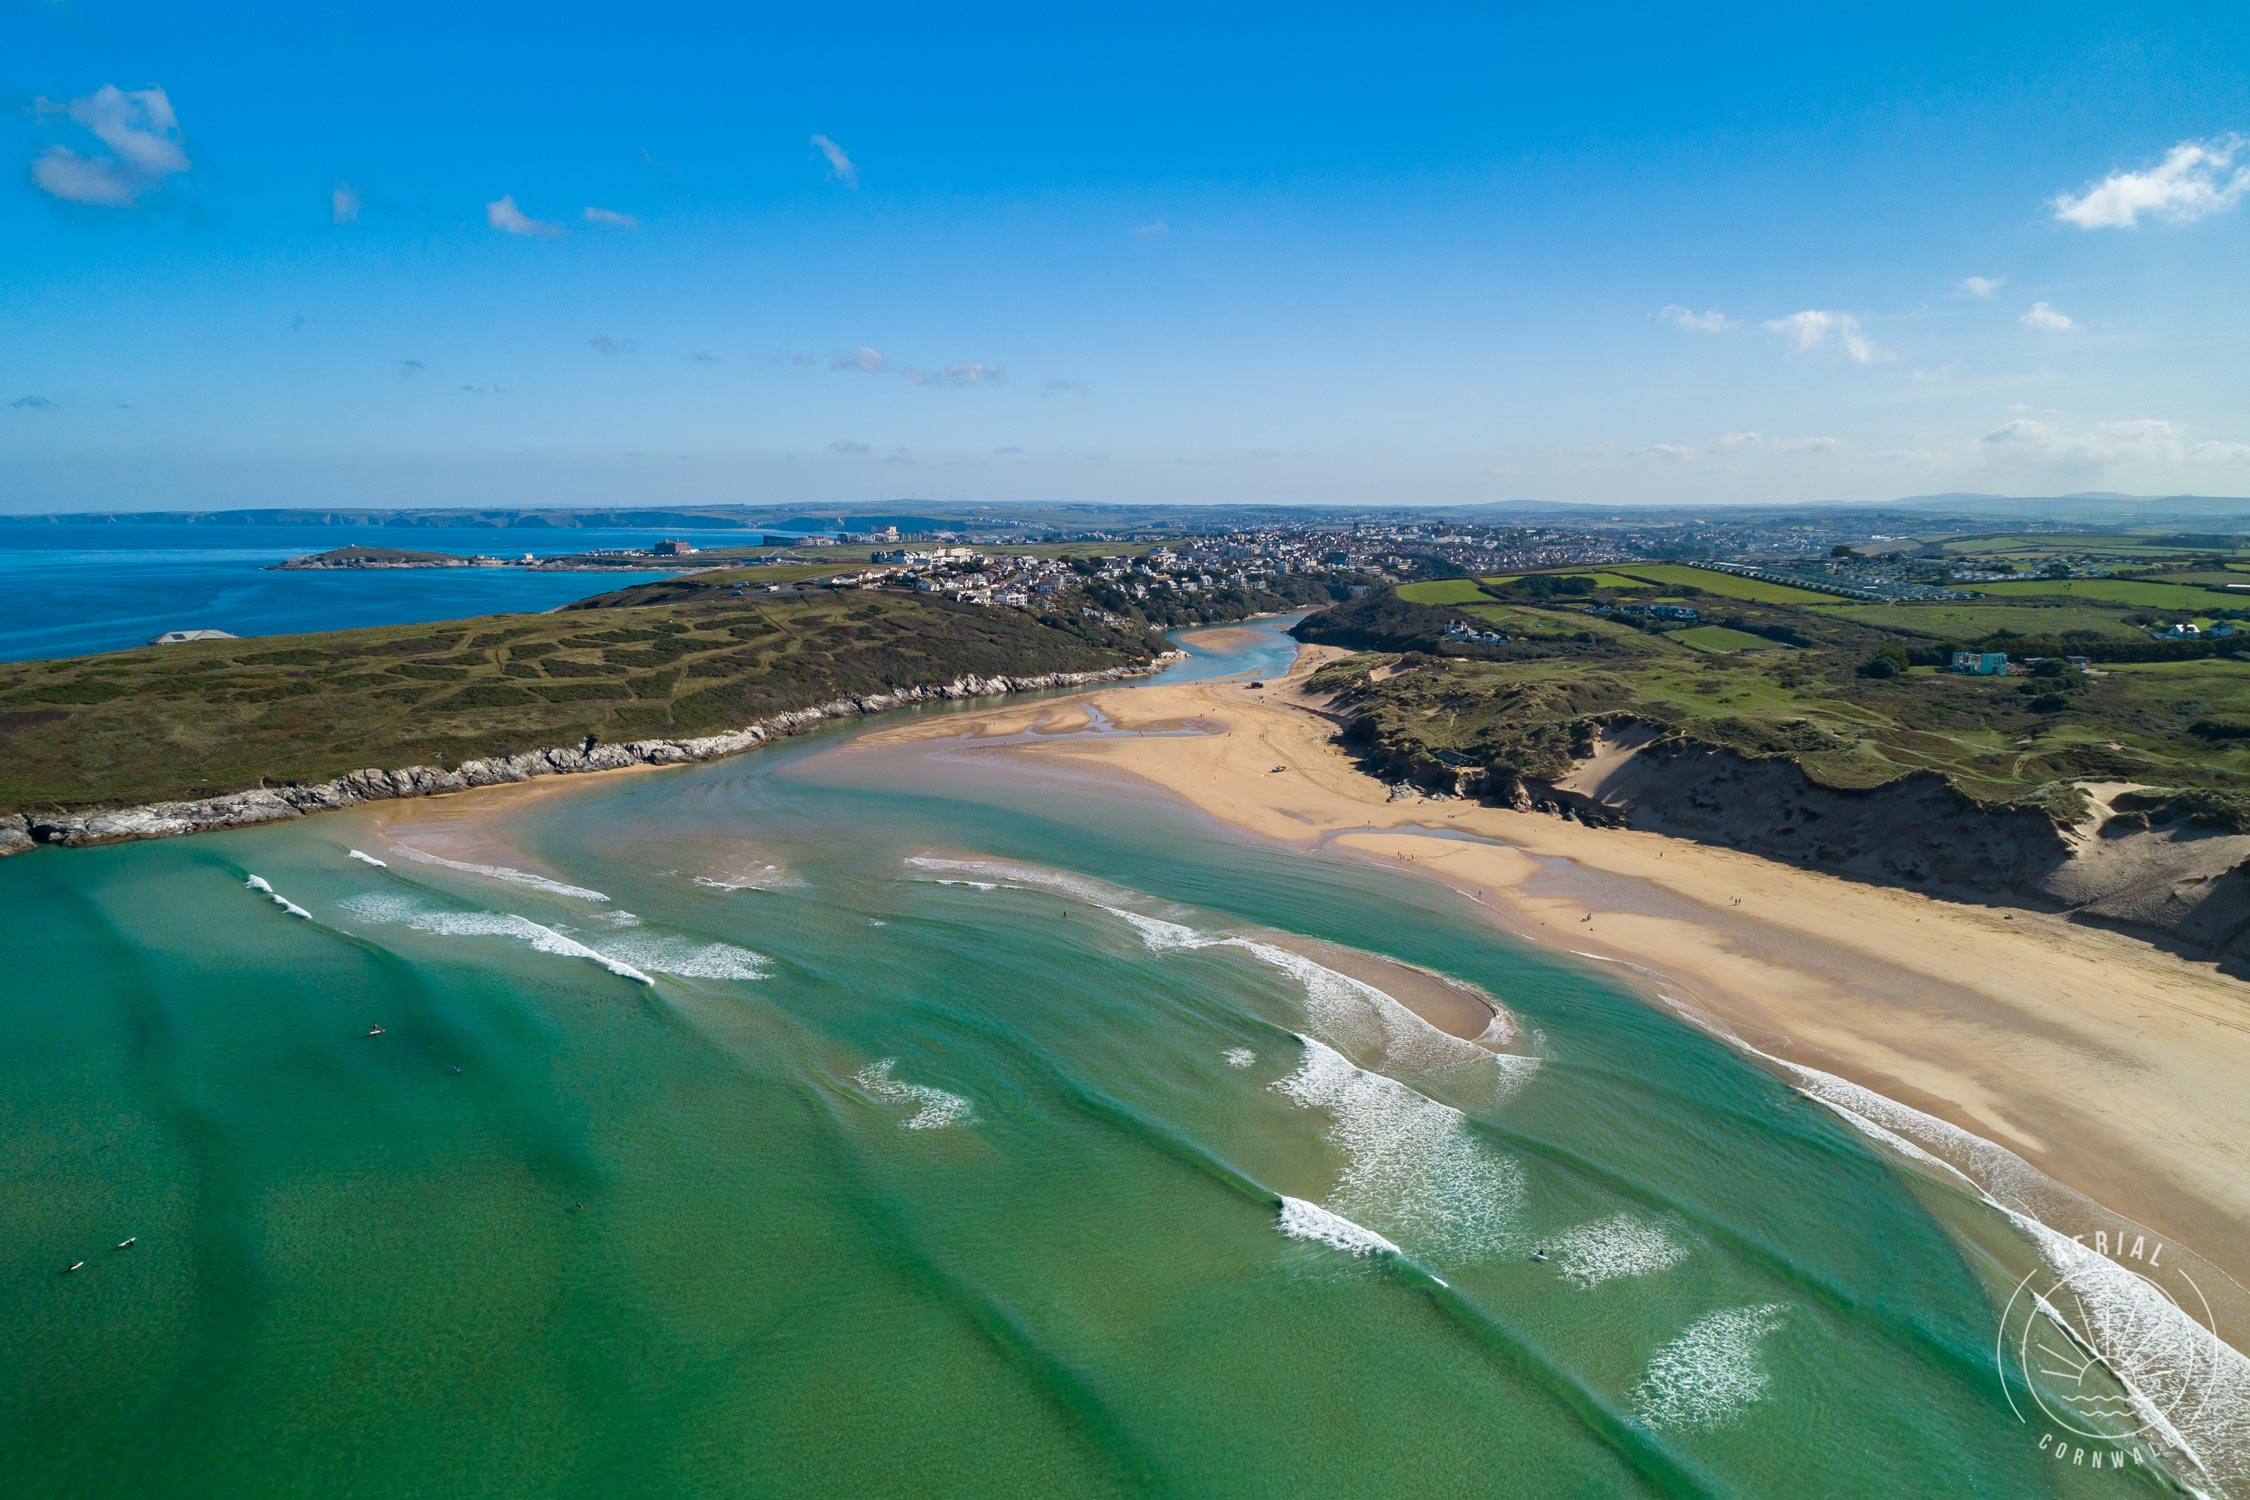 Location: Crantock Bay